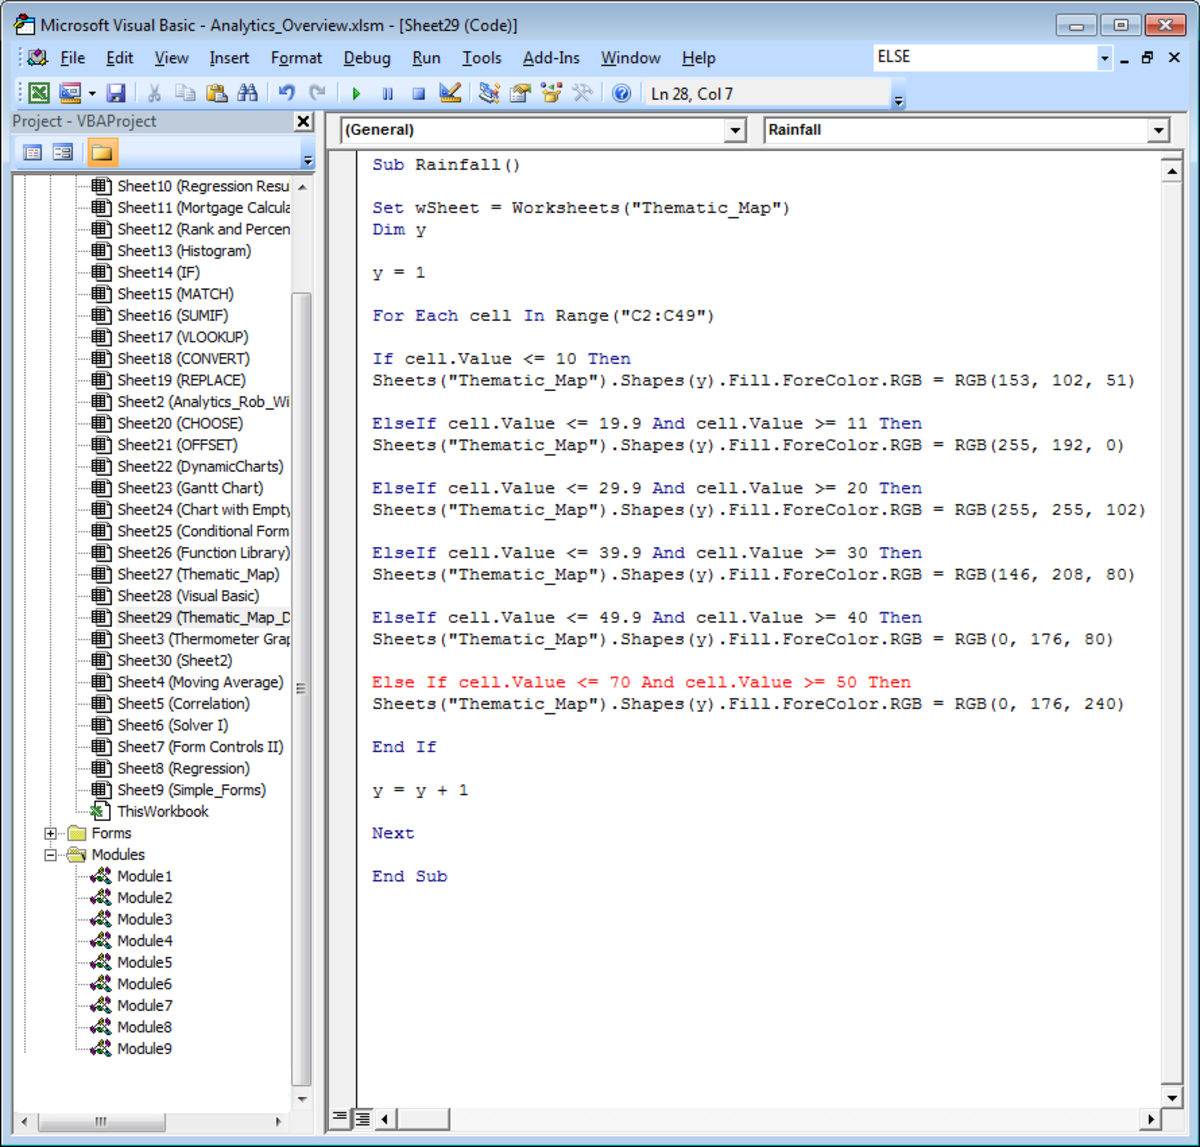 ELSE and IF cannot be used in the same line of Visual Basic code in Excel 2007 and Excel 2010.